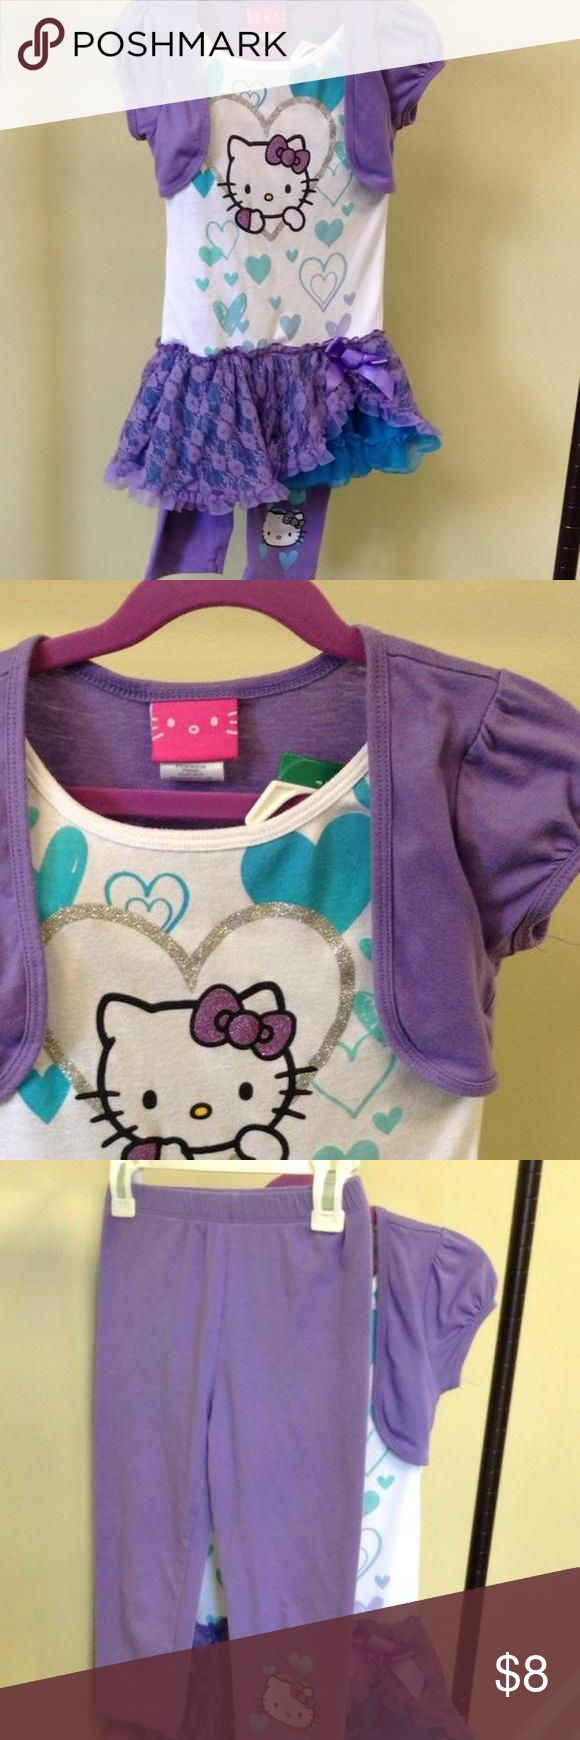 Hello kitty frilly shirt and legging set Sanrio Hello Kitty shirtdress and matching legging set. Size small. Excellent condition Hello Kitty Dresses